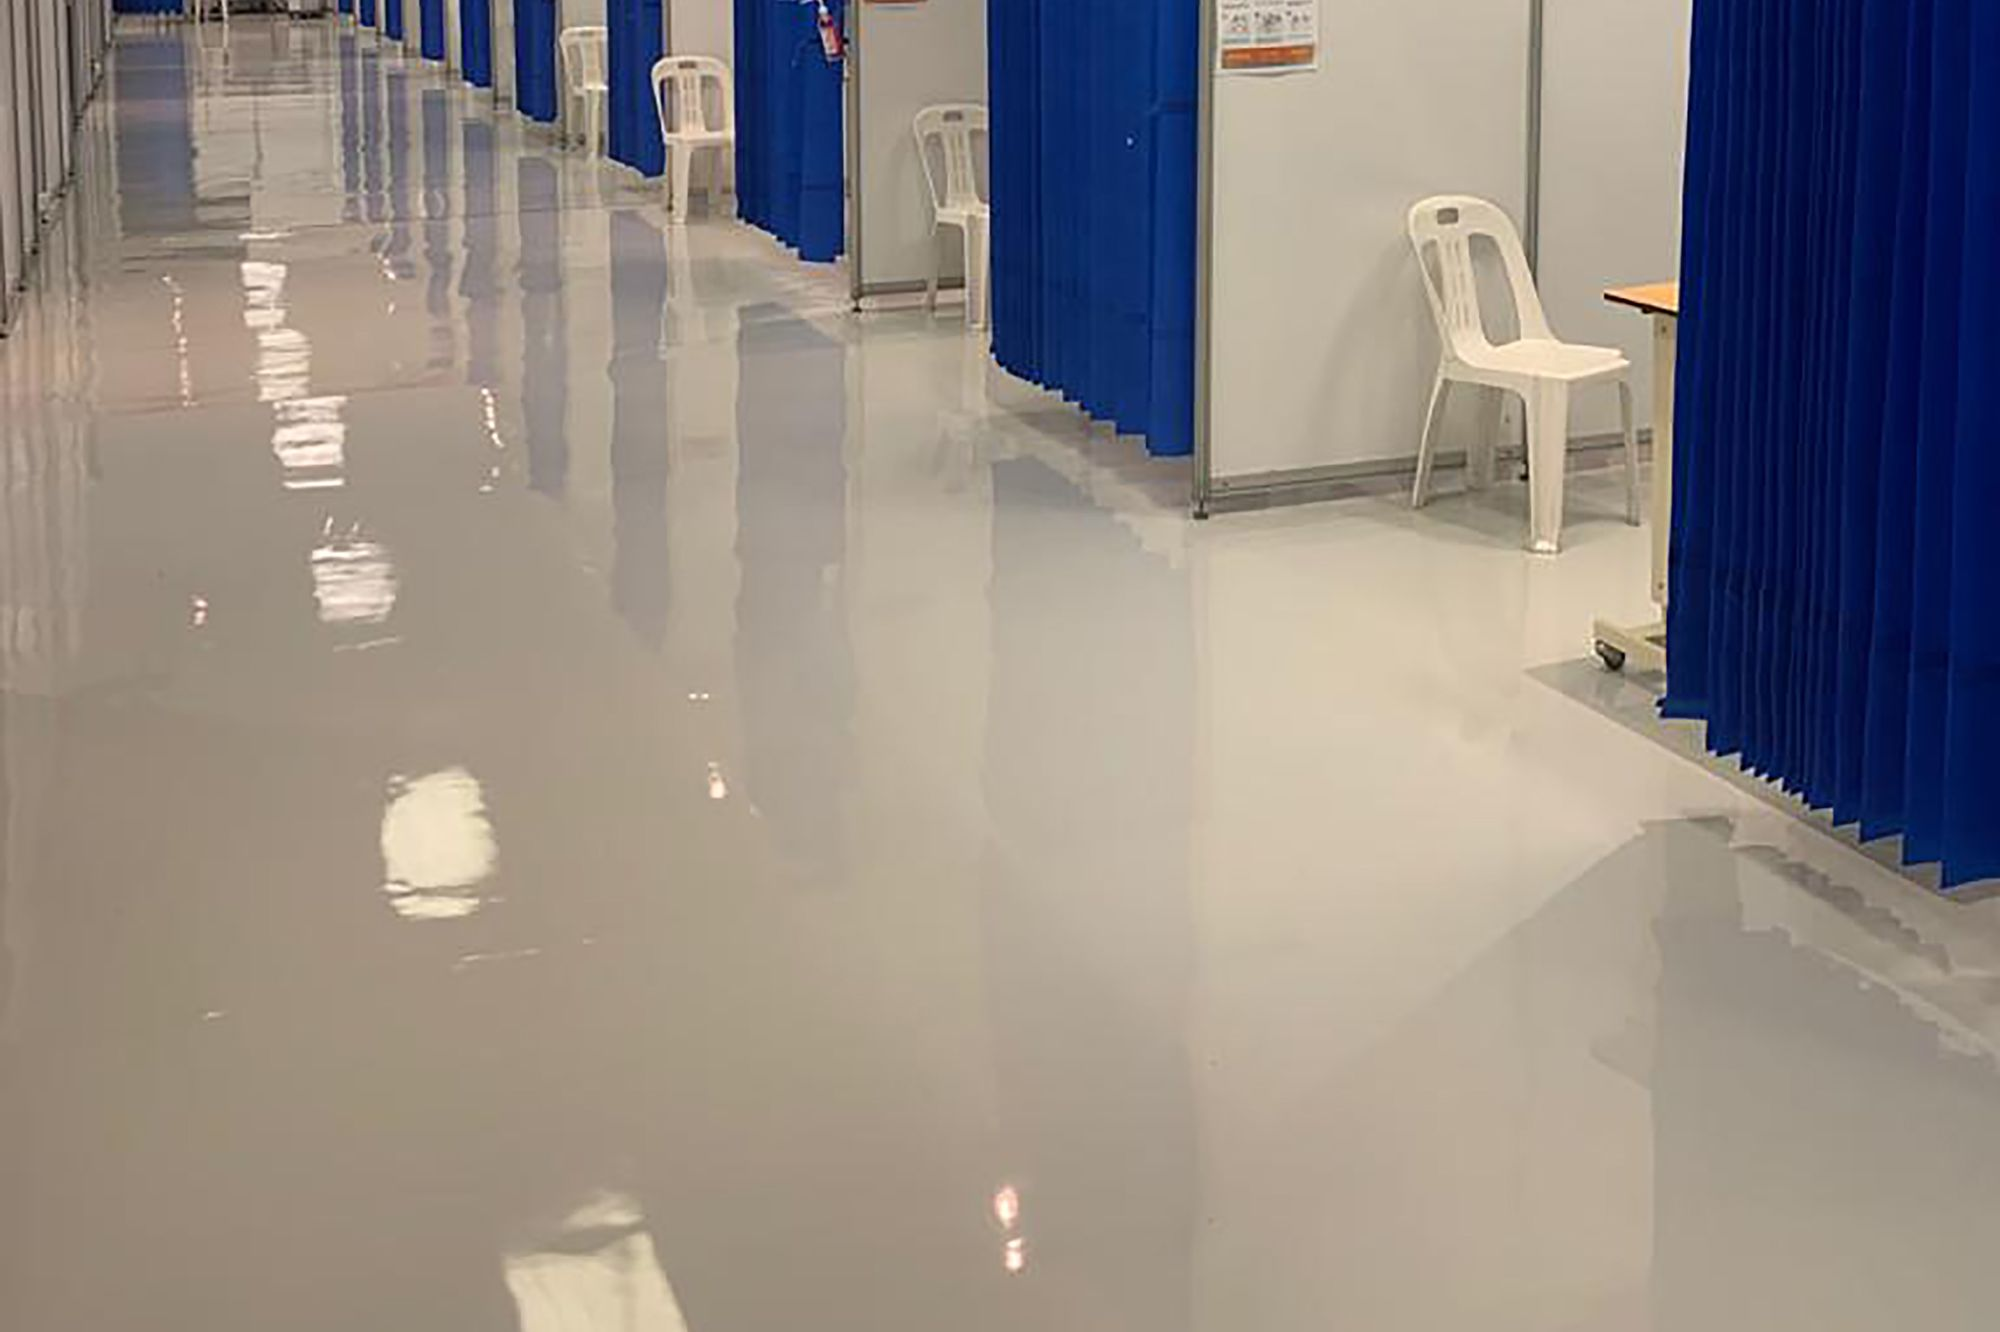 Sika's self-levelling epoxy floor coating were specified to assist the KZN Department of Health with flawlessly smooth floors for COVID health care facility.